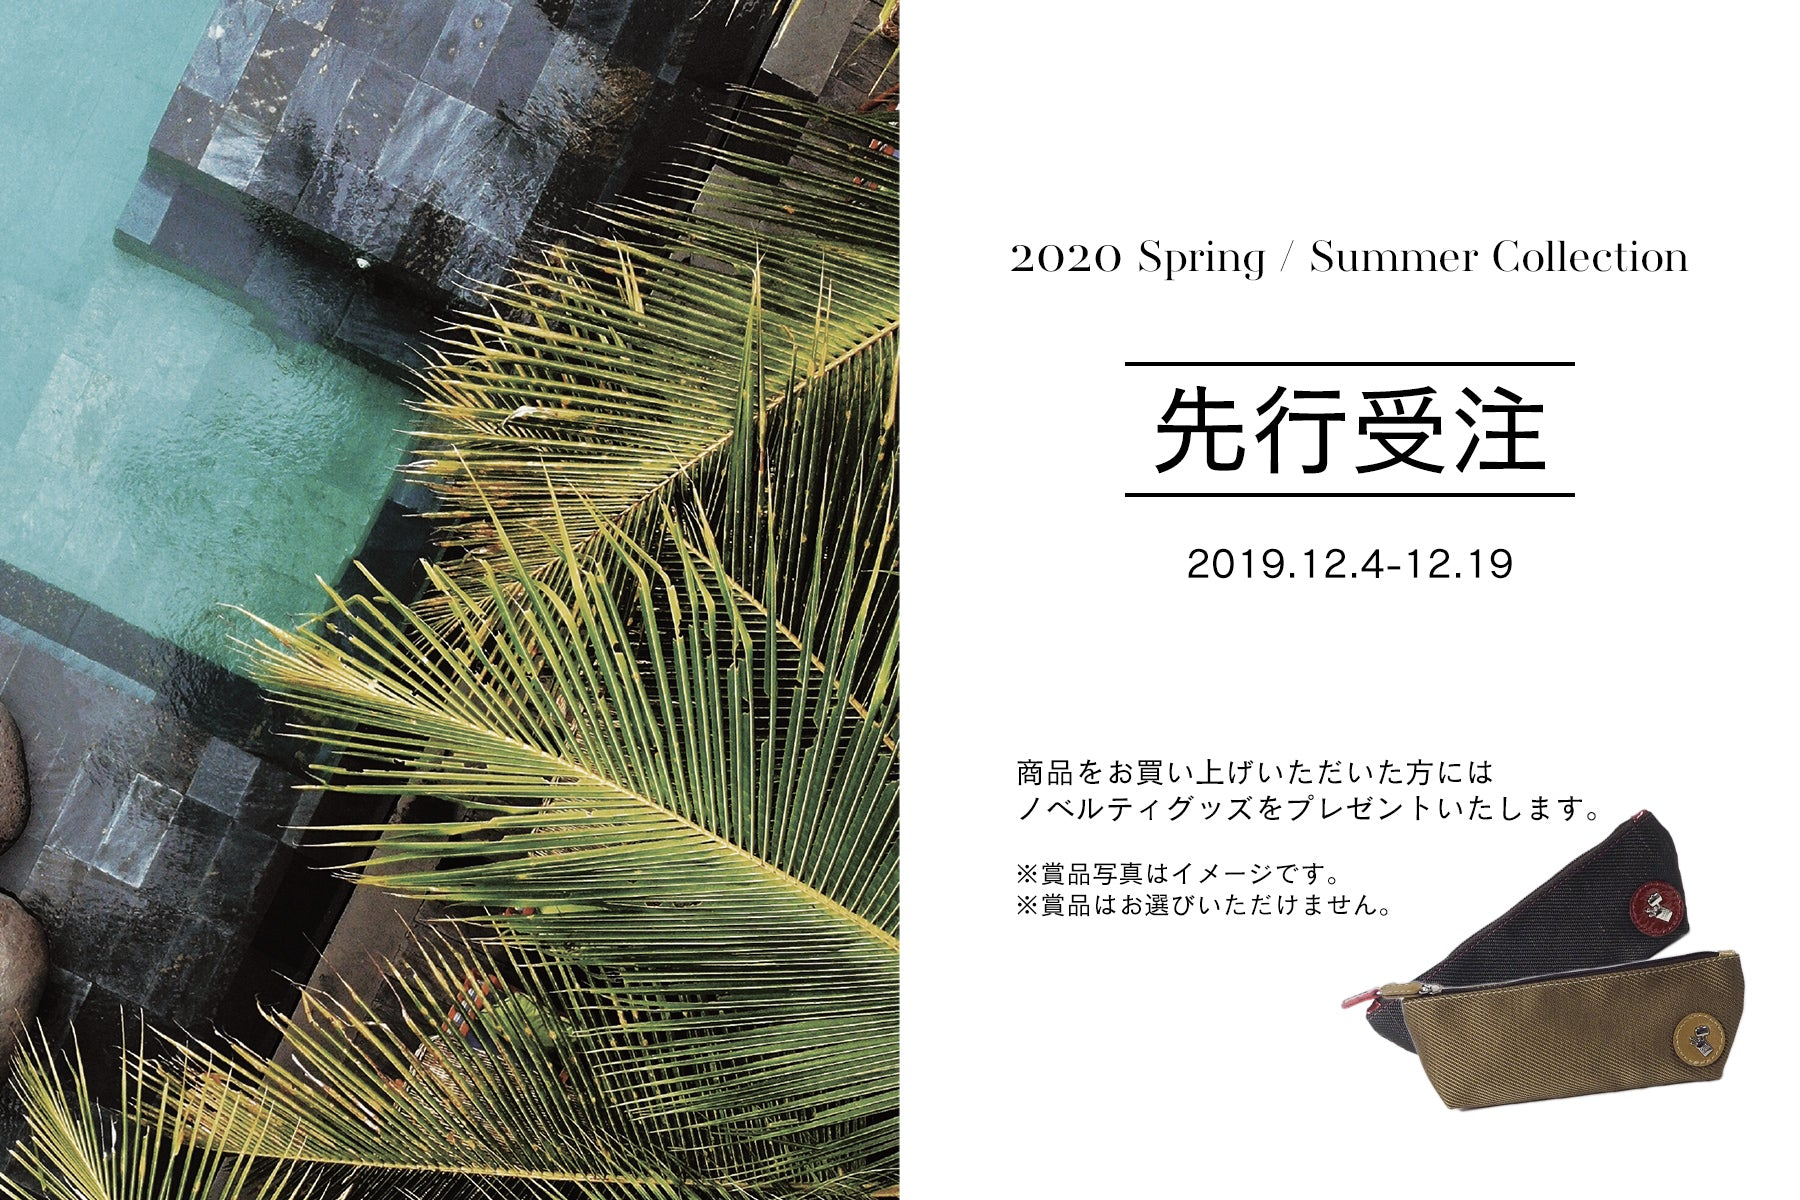 2020 Spring / Summer Collection 先行受注